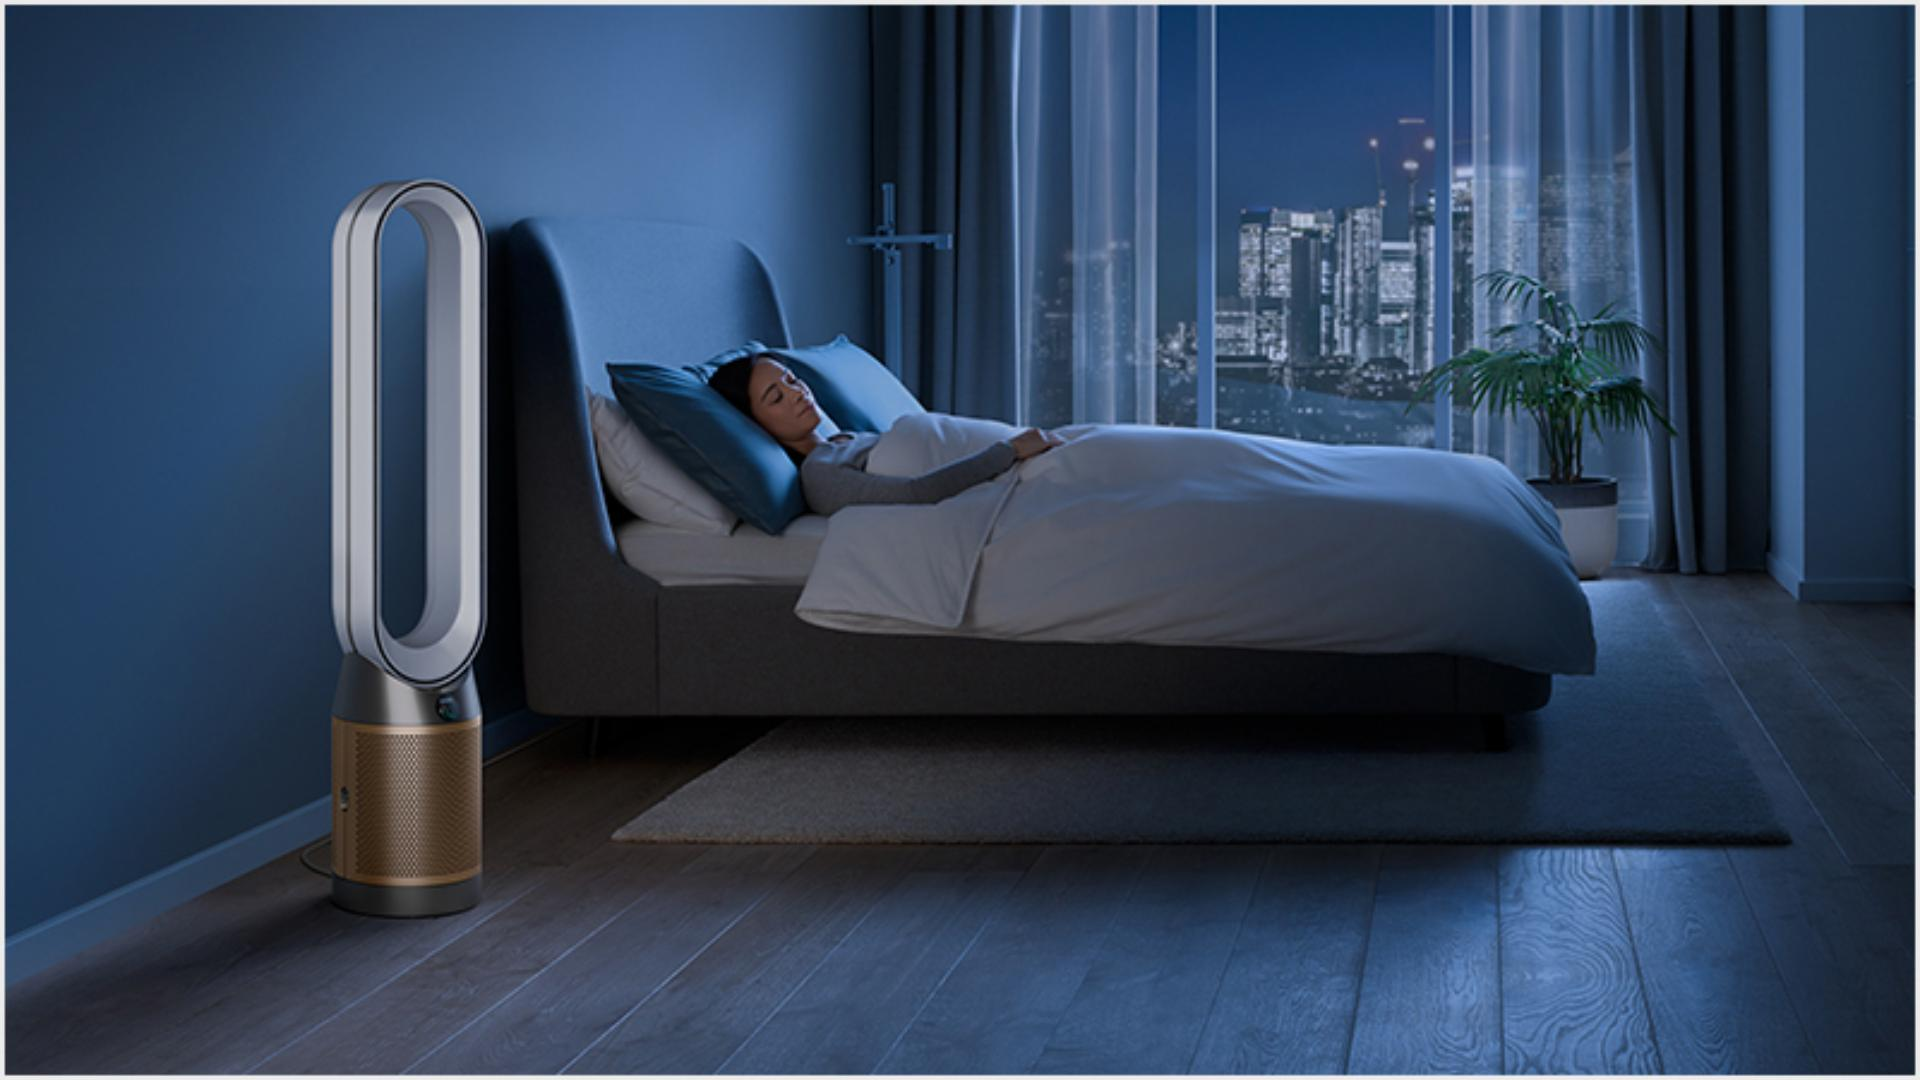 Dyson purifier working in a quiet environment